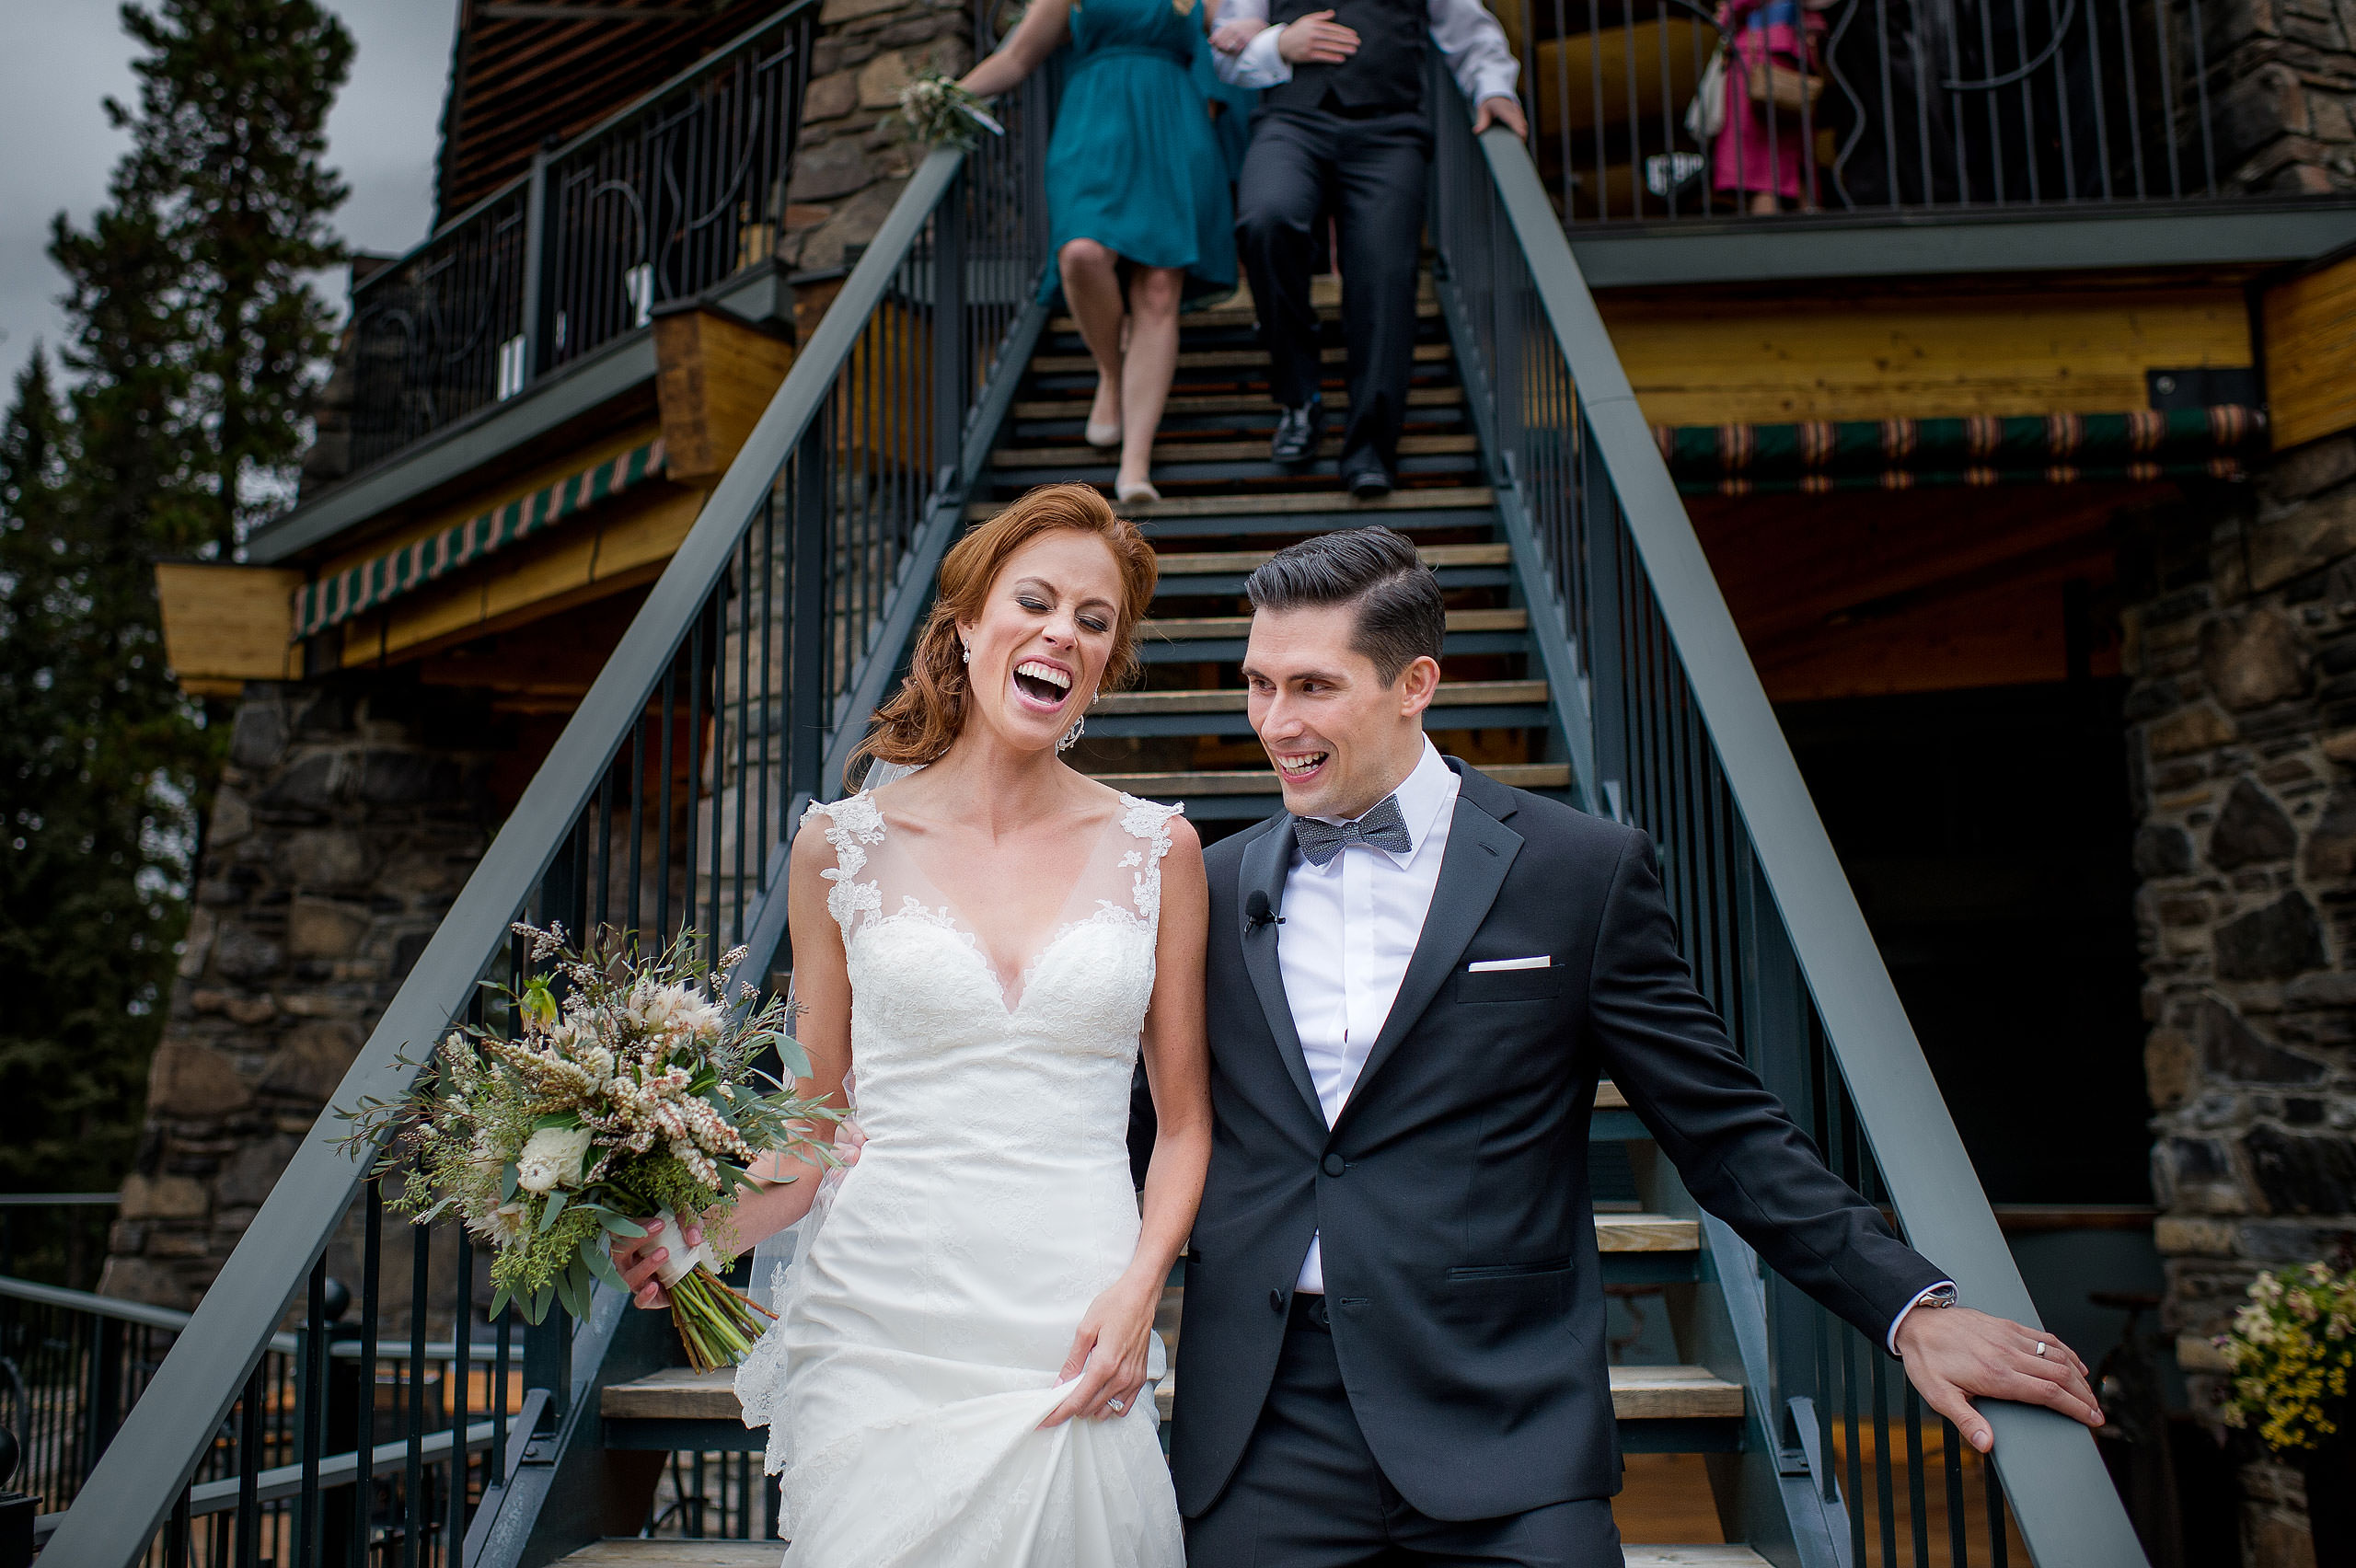 bride and groom after their wedding ceremony by top calgary wedding photographer sean leblanc